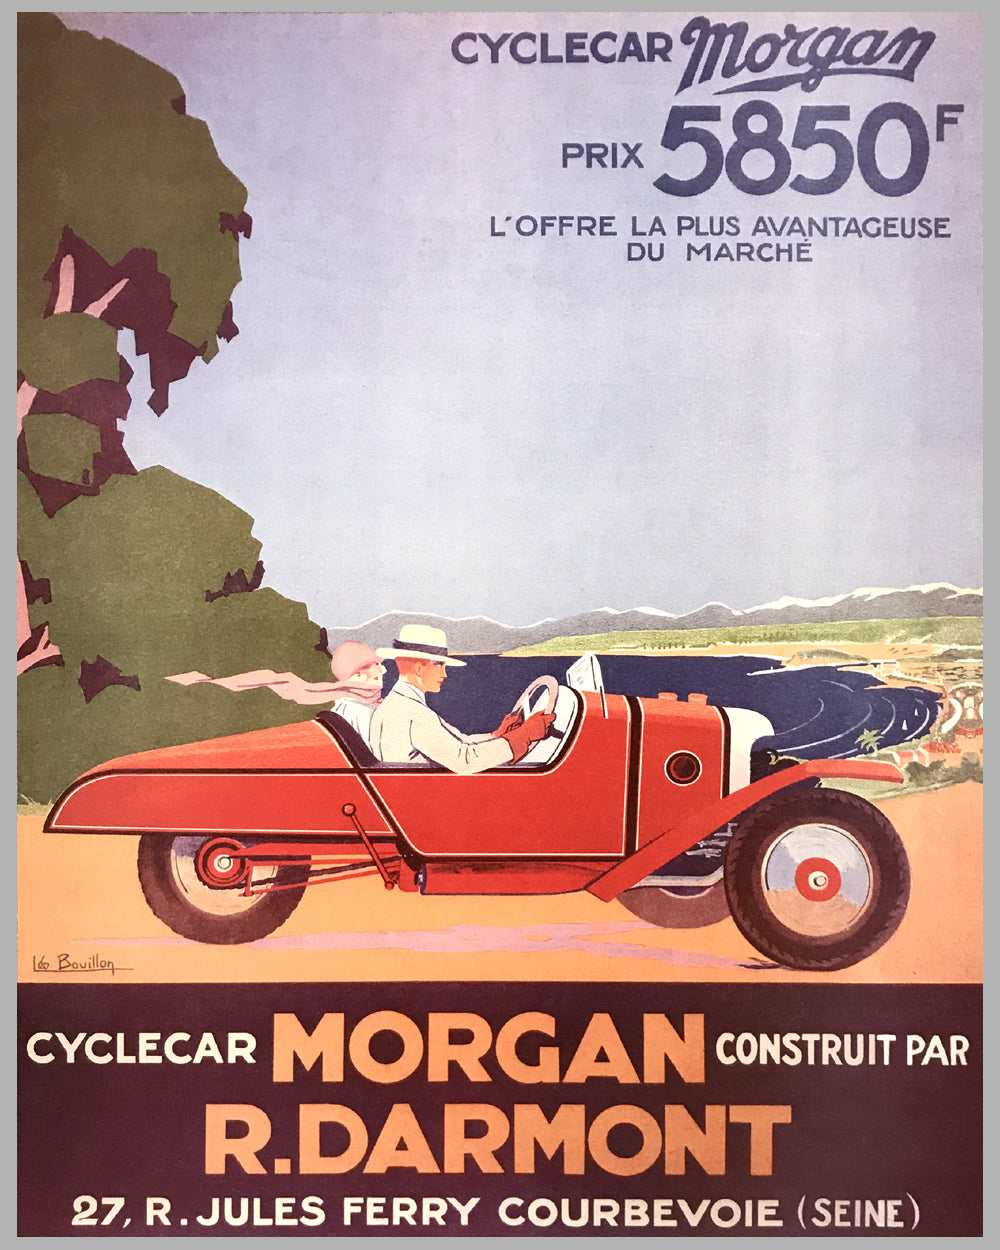 Cyclecar Morgan advertising poster by Leo Bouillon